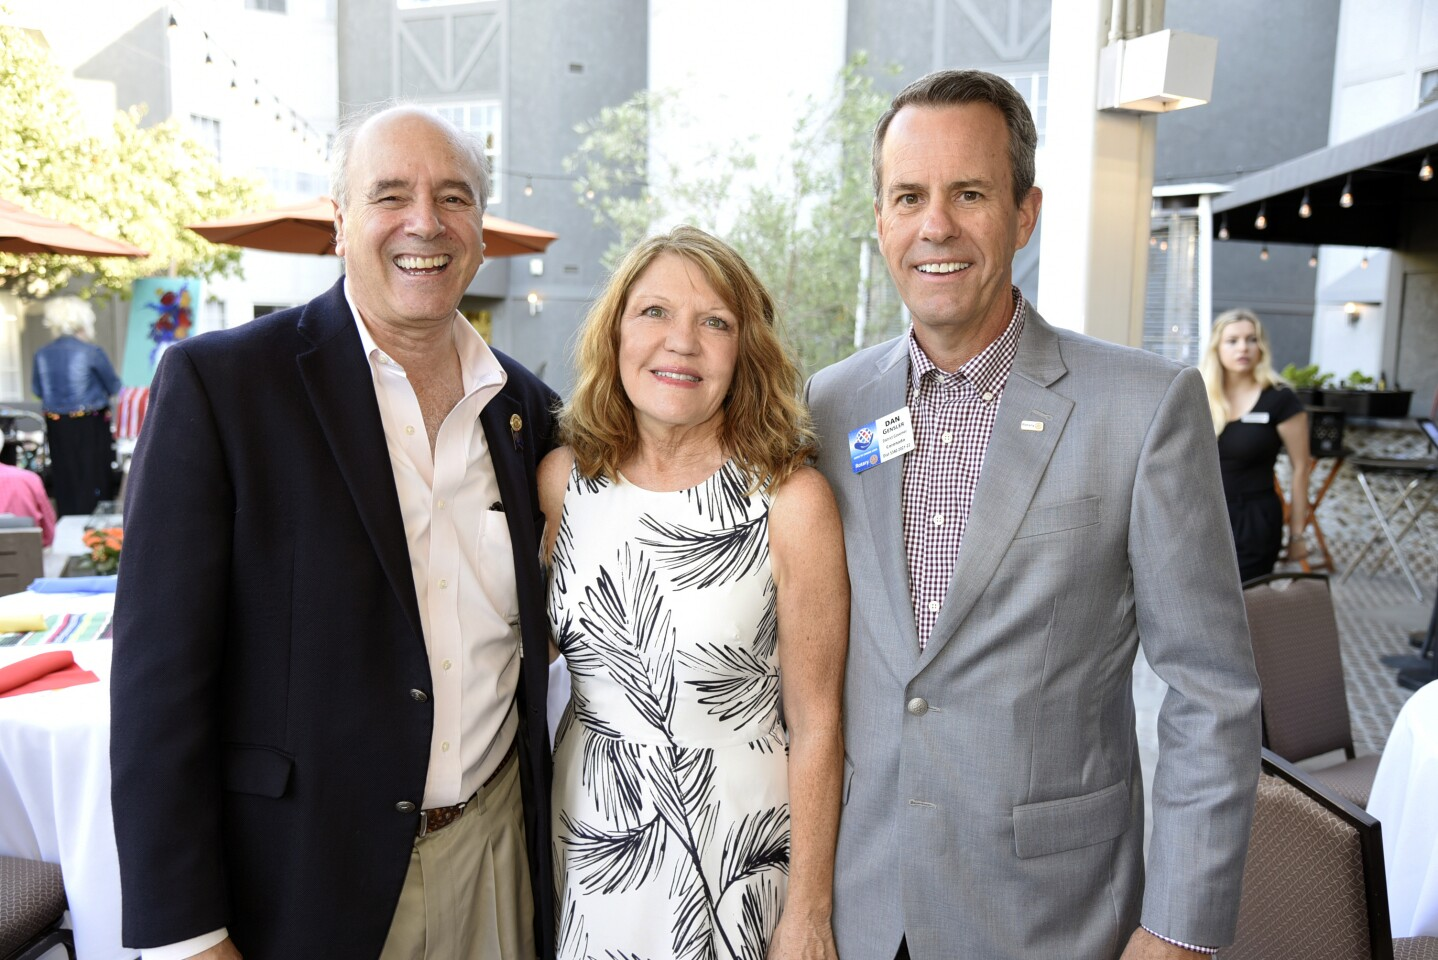 Past President/Immediate Past District Governor District 5340 Steve Weitzen, President/event chair Vicky Mallett, District Governor District 5340 Dan Gensler